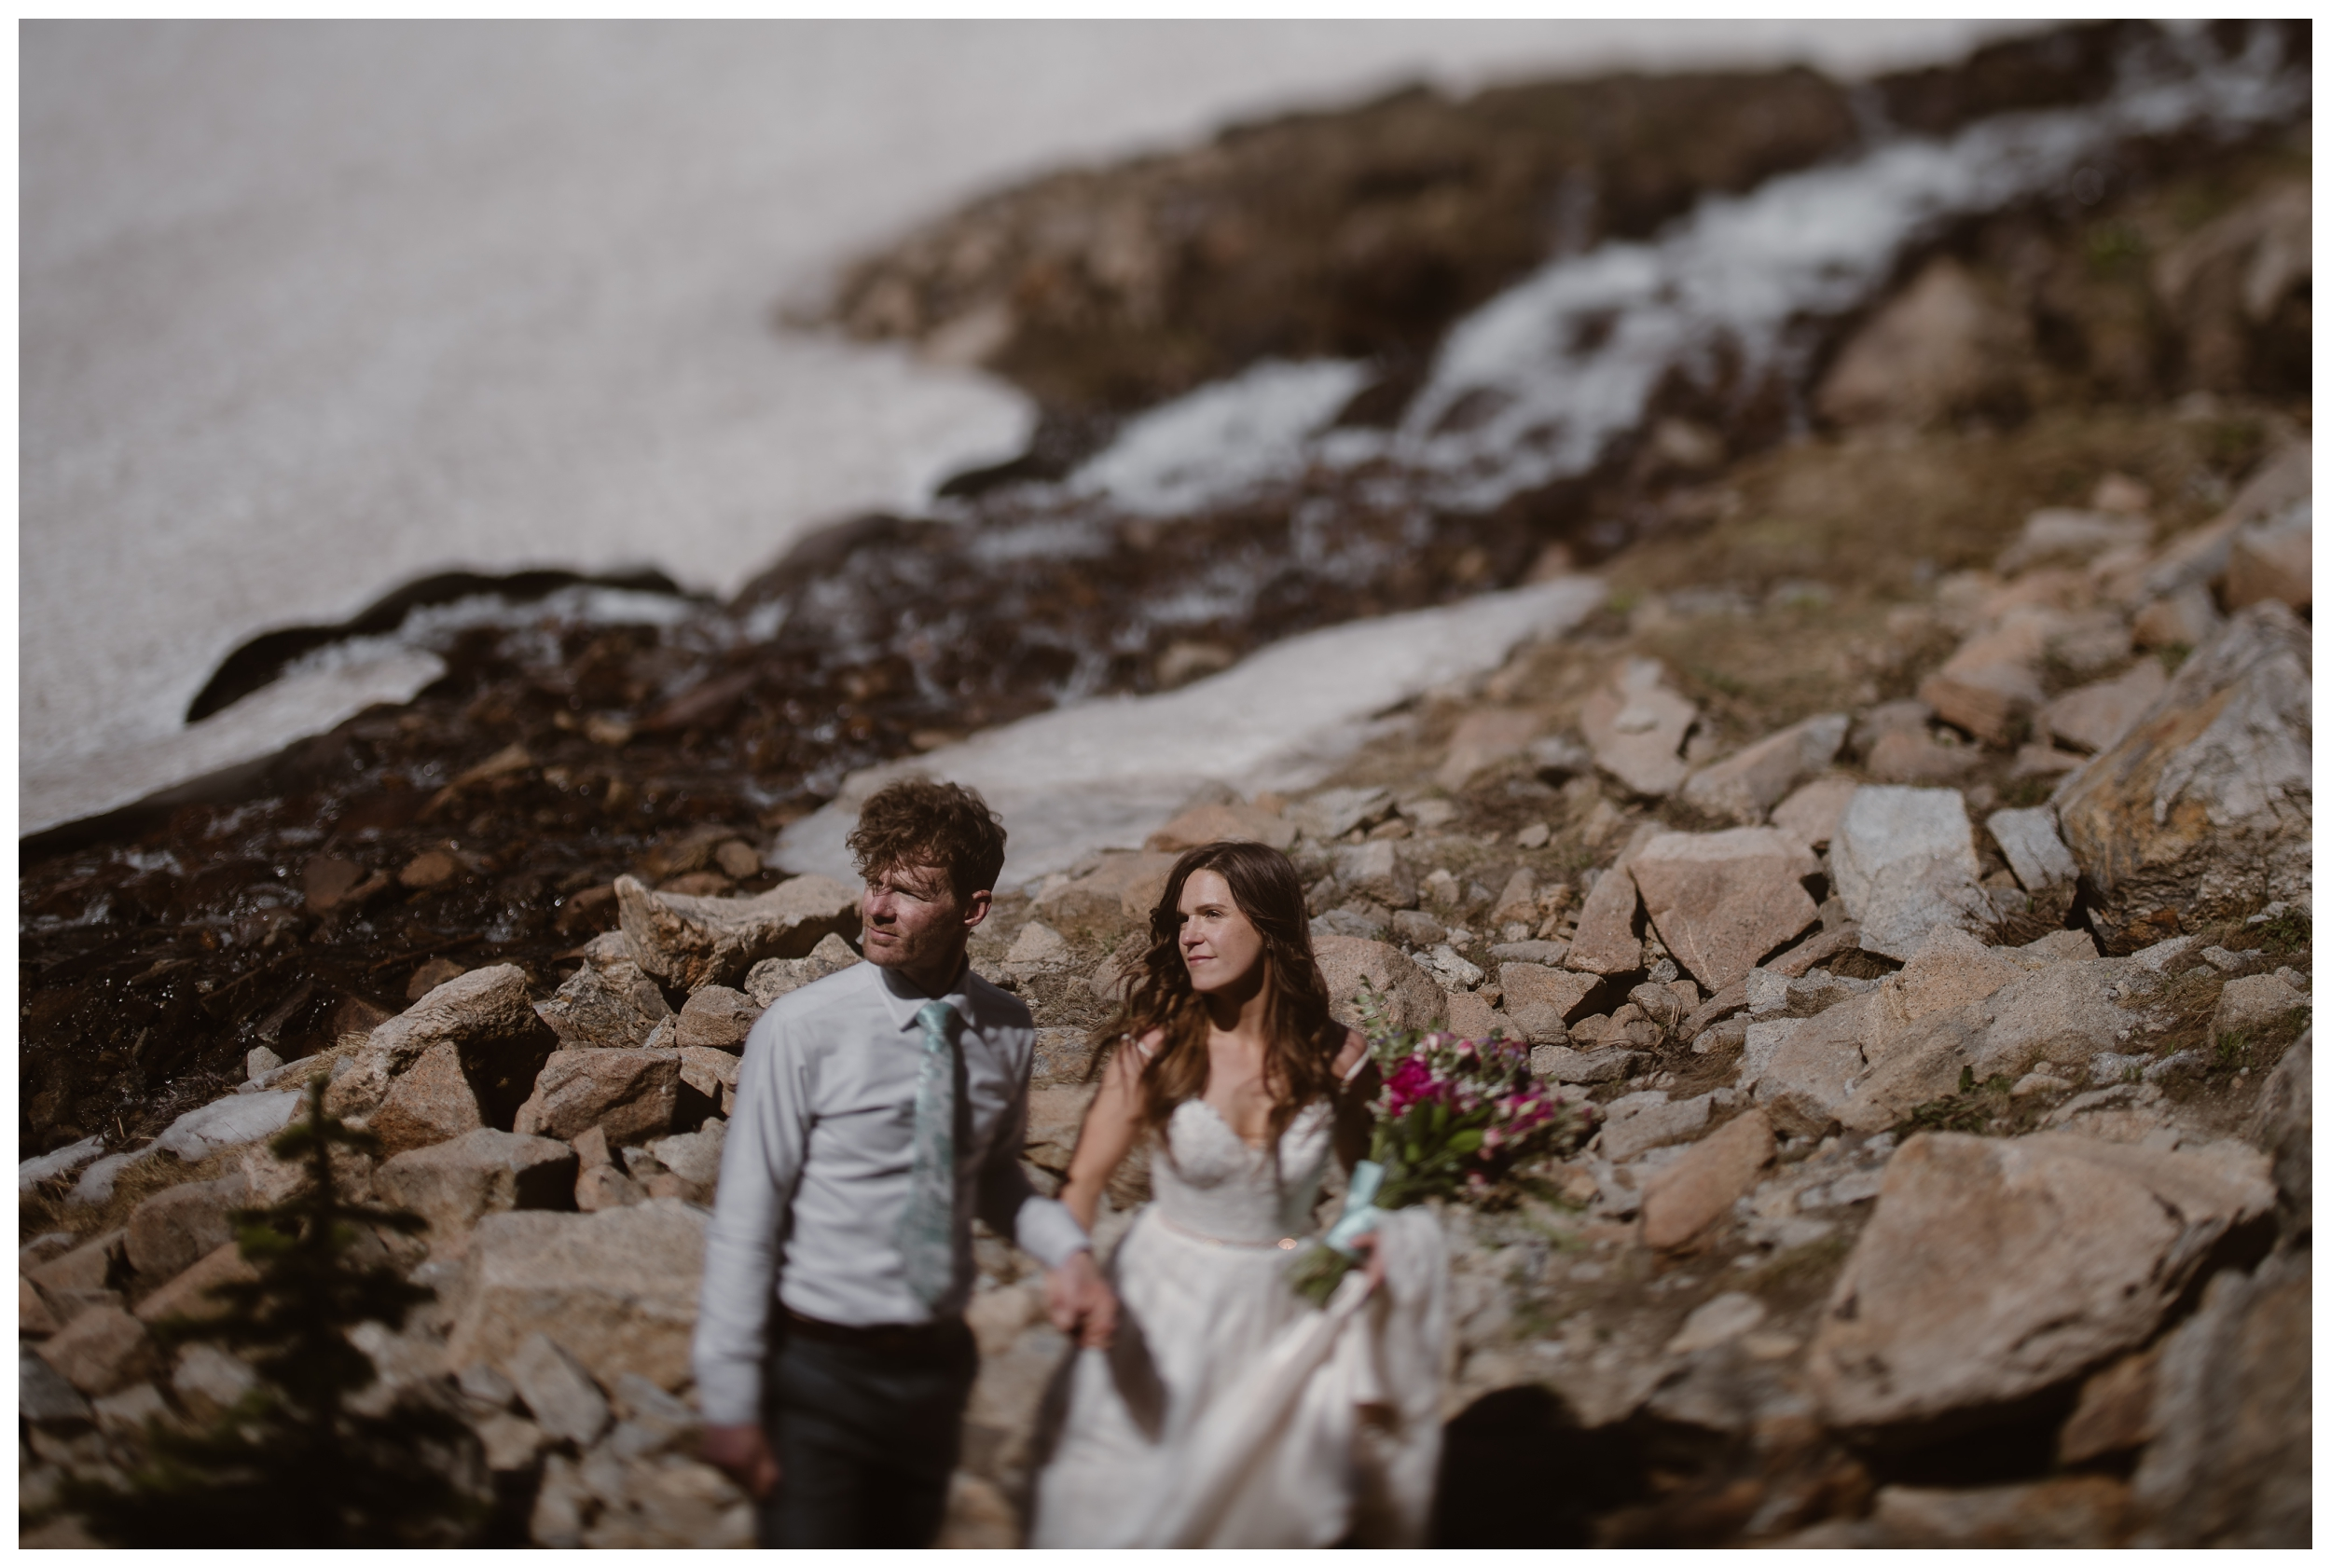 The rocky shores of Lake Isabelle, a high alpine lake outside Nederland, Colorado, are behind Karen and Matt as they hike and explore following their adventure elopement ceremony. Photo by Adventure Instead, Maddie Mae.